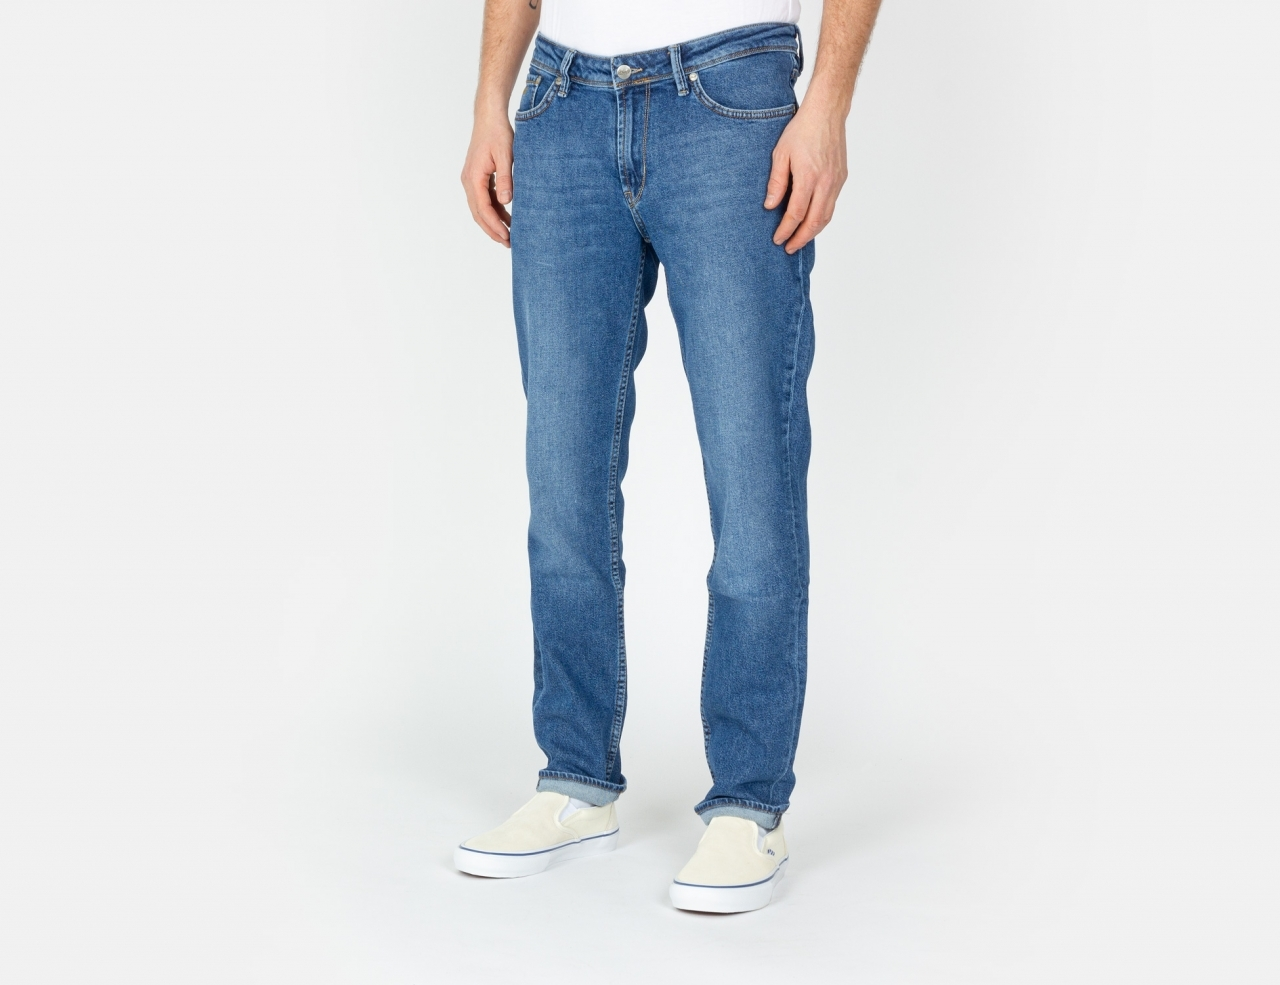 Reell Jeans Spider Jeans - Light Stone